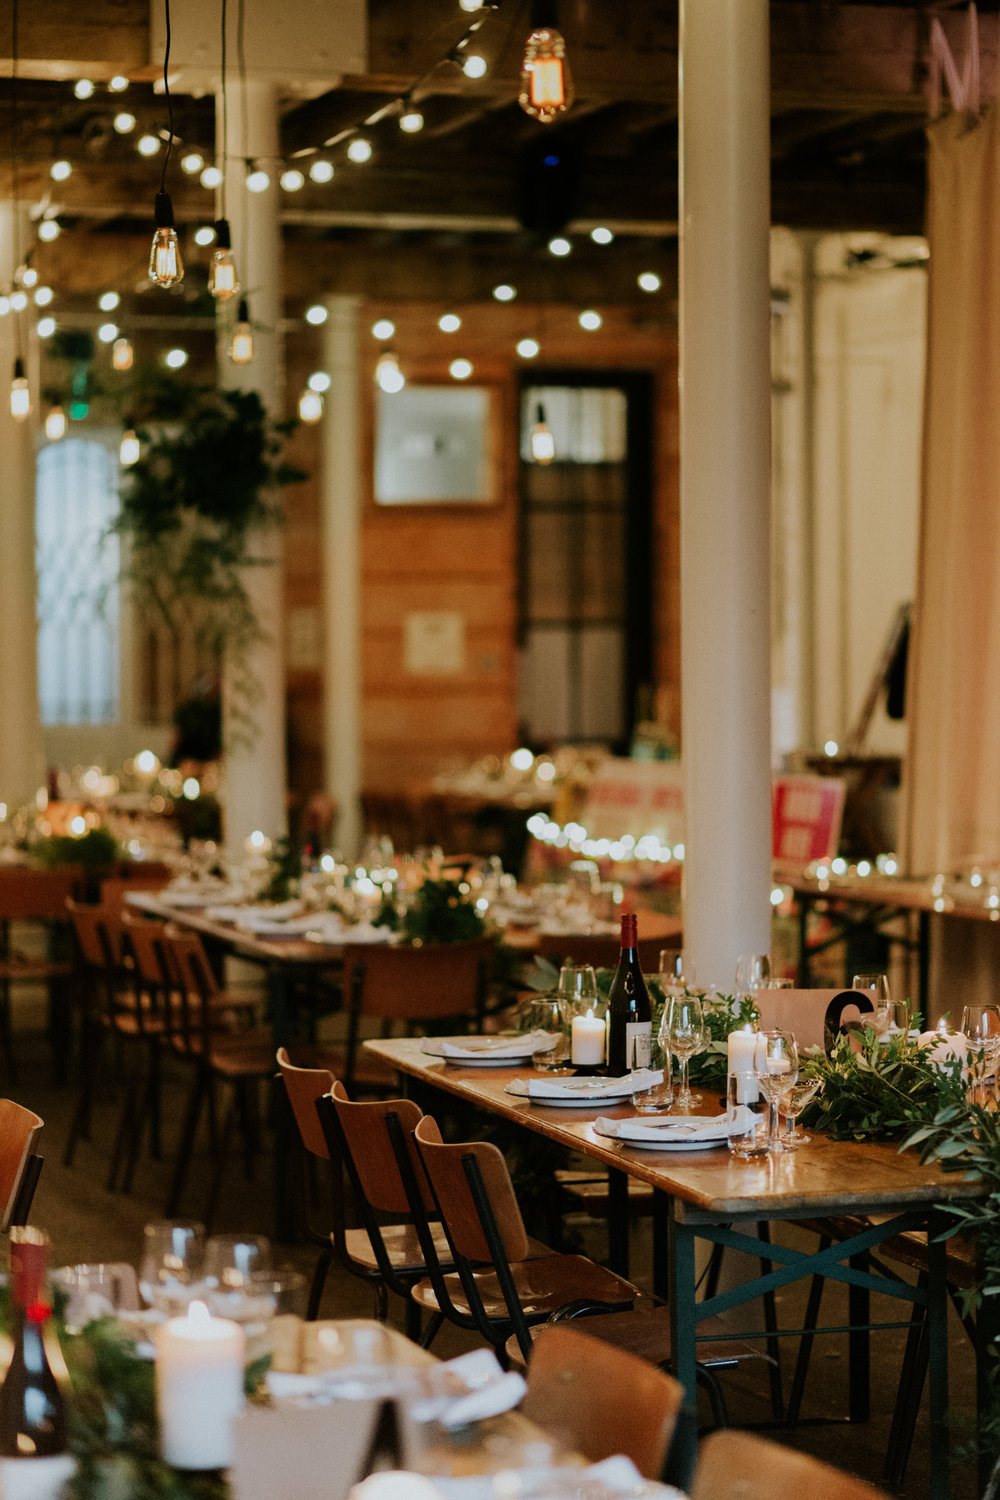 Quirky Venue, Non-traditional wedding planner, dry-hire venue, London Wedding coordination, Event Bar, Bespoke weddings, Event team, Brixton East 1871 Wedding, Streetfood wedding, informal, Stylish,